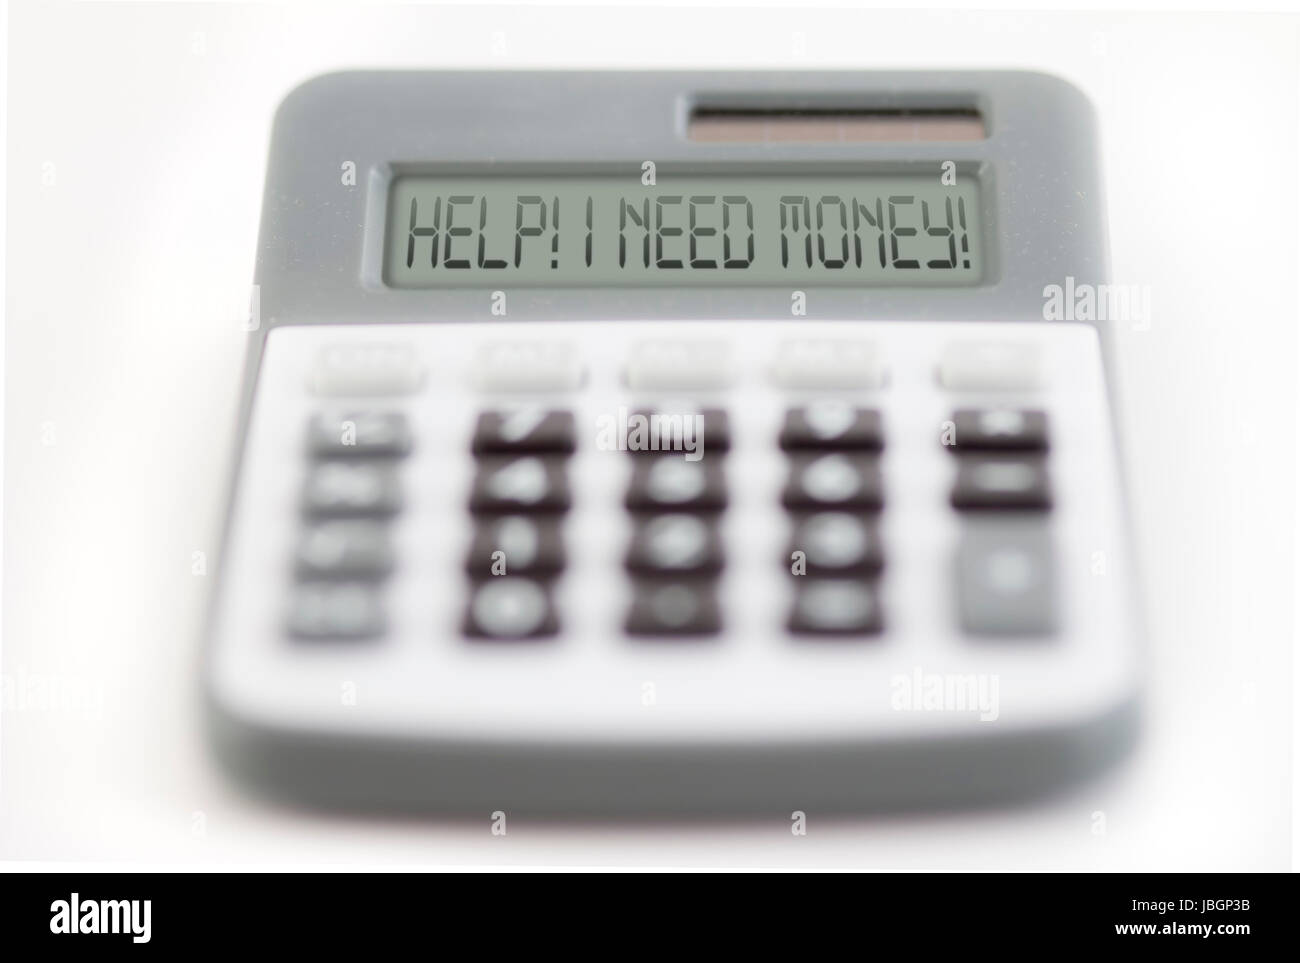 Funny collage - counting of the financial position - help - I need money - Stock Image